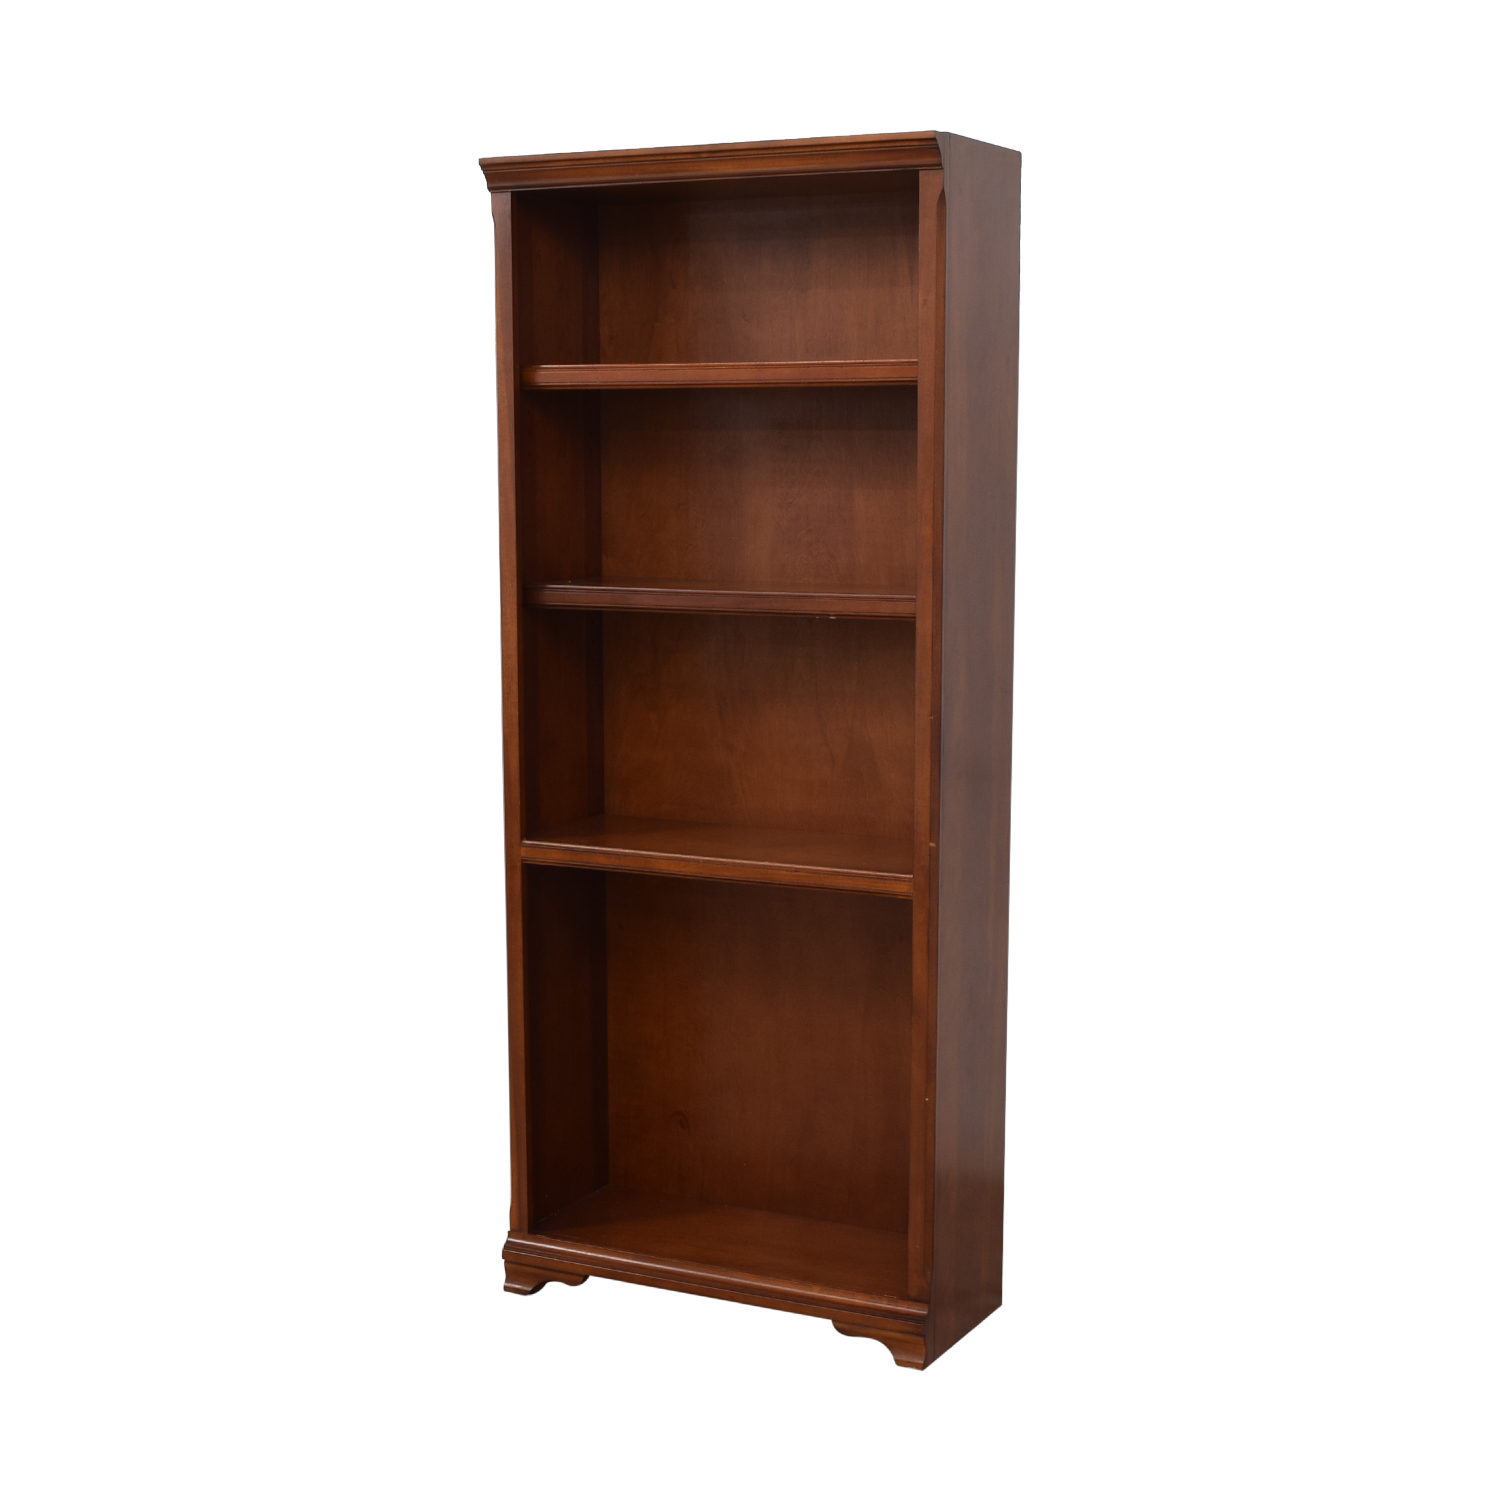 shop Raymour & Flanigan Bookcase Raymour & Flanigan Bookcases & Shelving